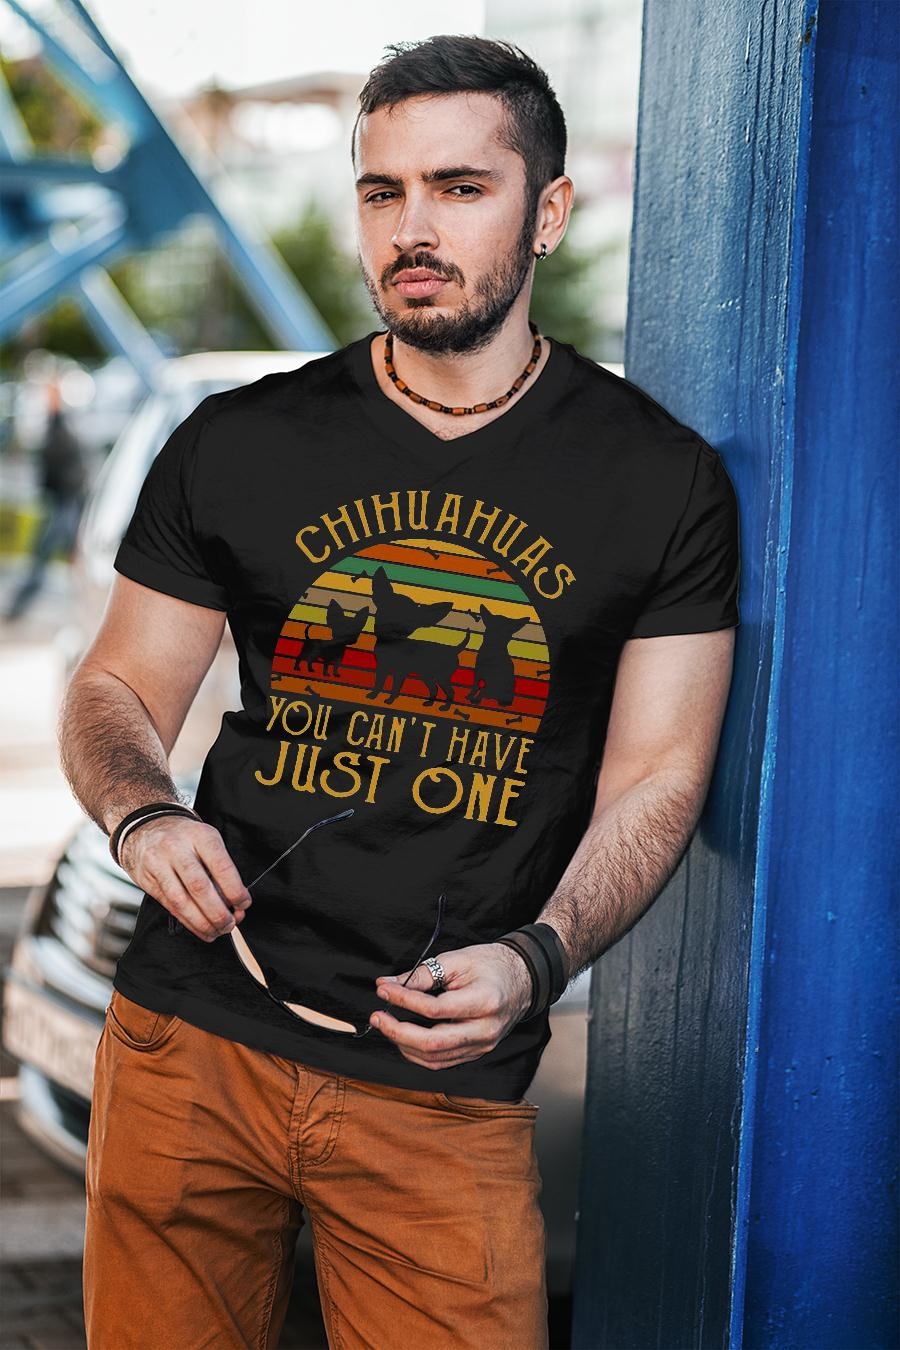 Chihuahuas you cant have just one vintage retro shirt unisex